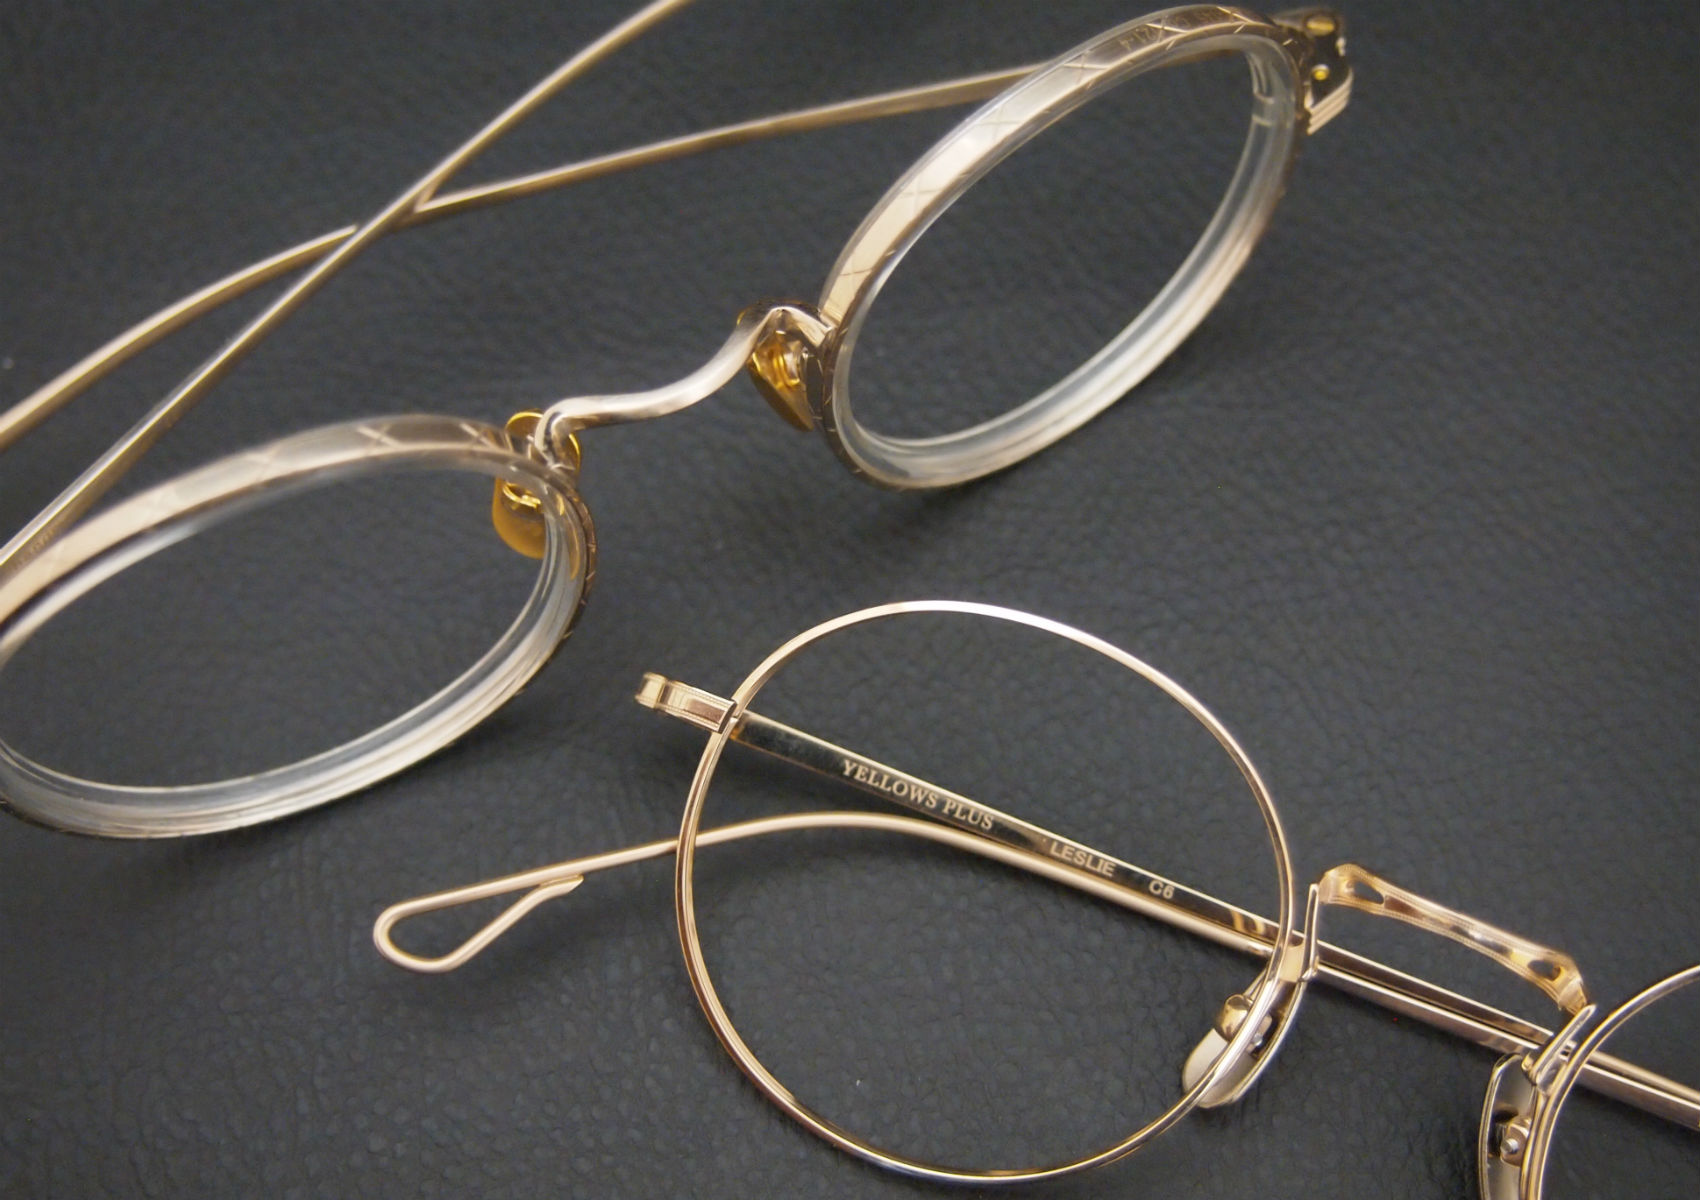 YELLOWS PLUS OG×OLIVERGOLDSMITH ホワイトゴールド